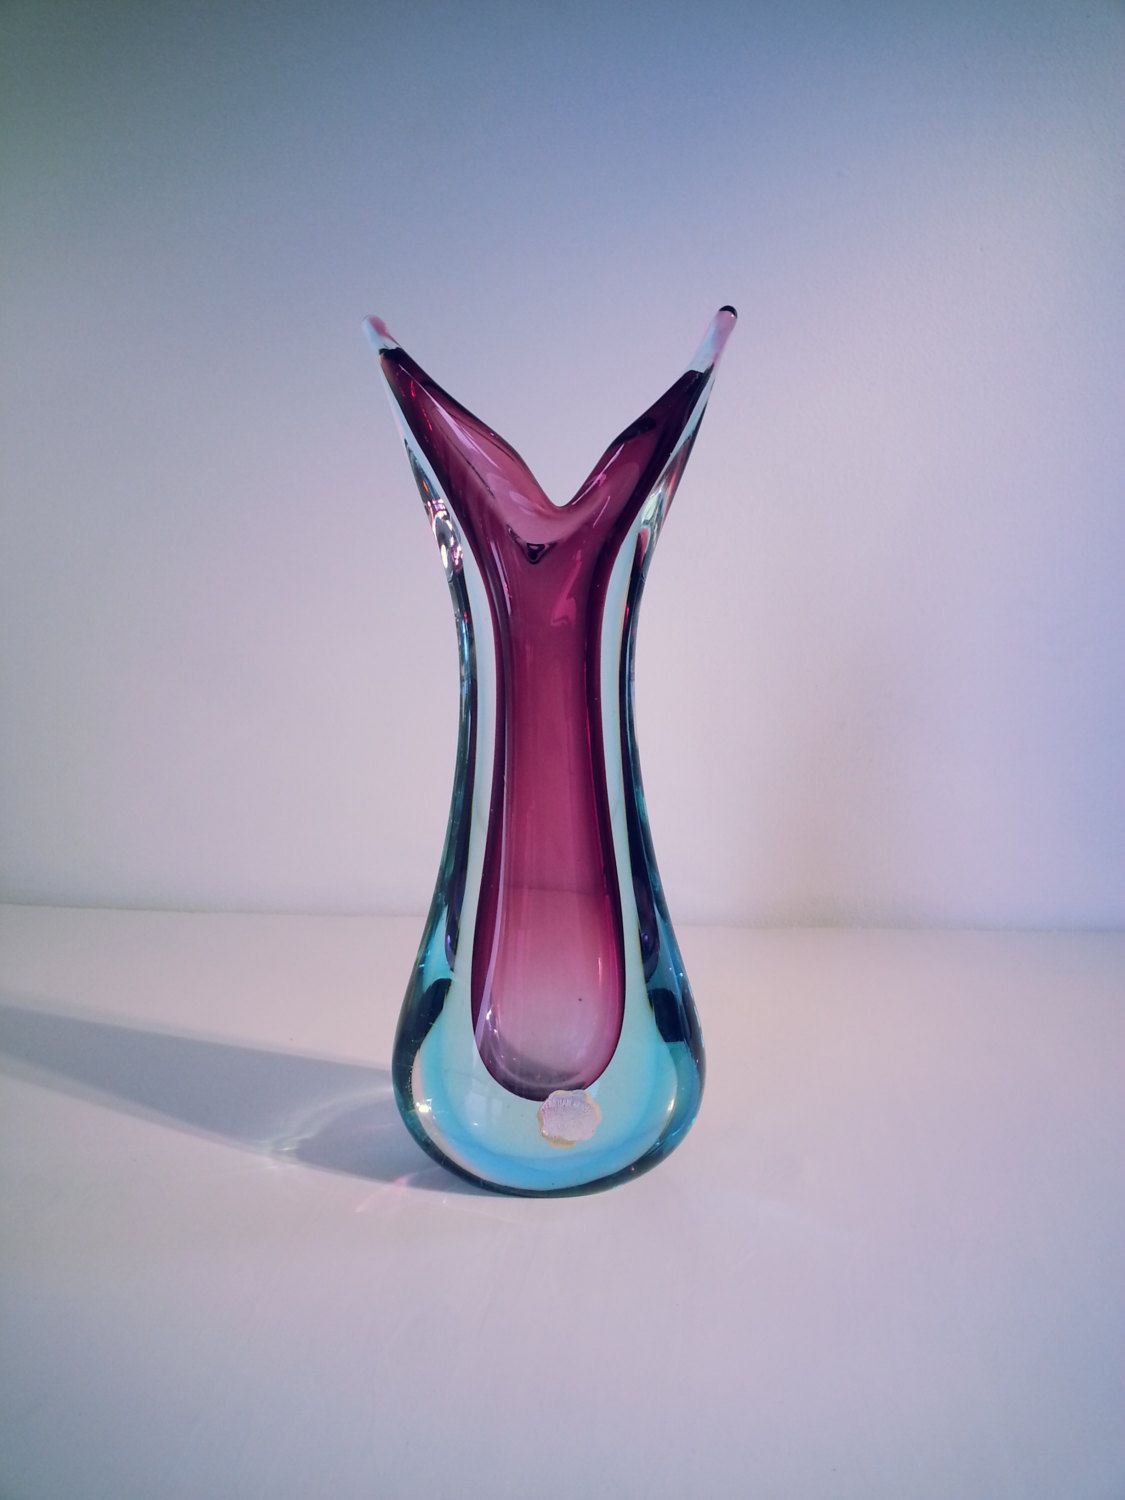 Small Green Glass Vase Of Murano sommerso Genuine Venetian Glass 1950s 1960s Purple Blue Throughout Murano sommerso Genuine Venetian Glass 1950s 1960s Purple Blue Glass Vase Pulled Design Vase Made In Italy by Fcollectables On Etsy